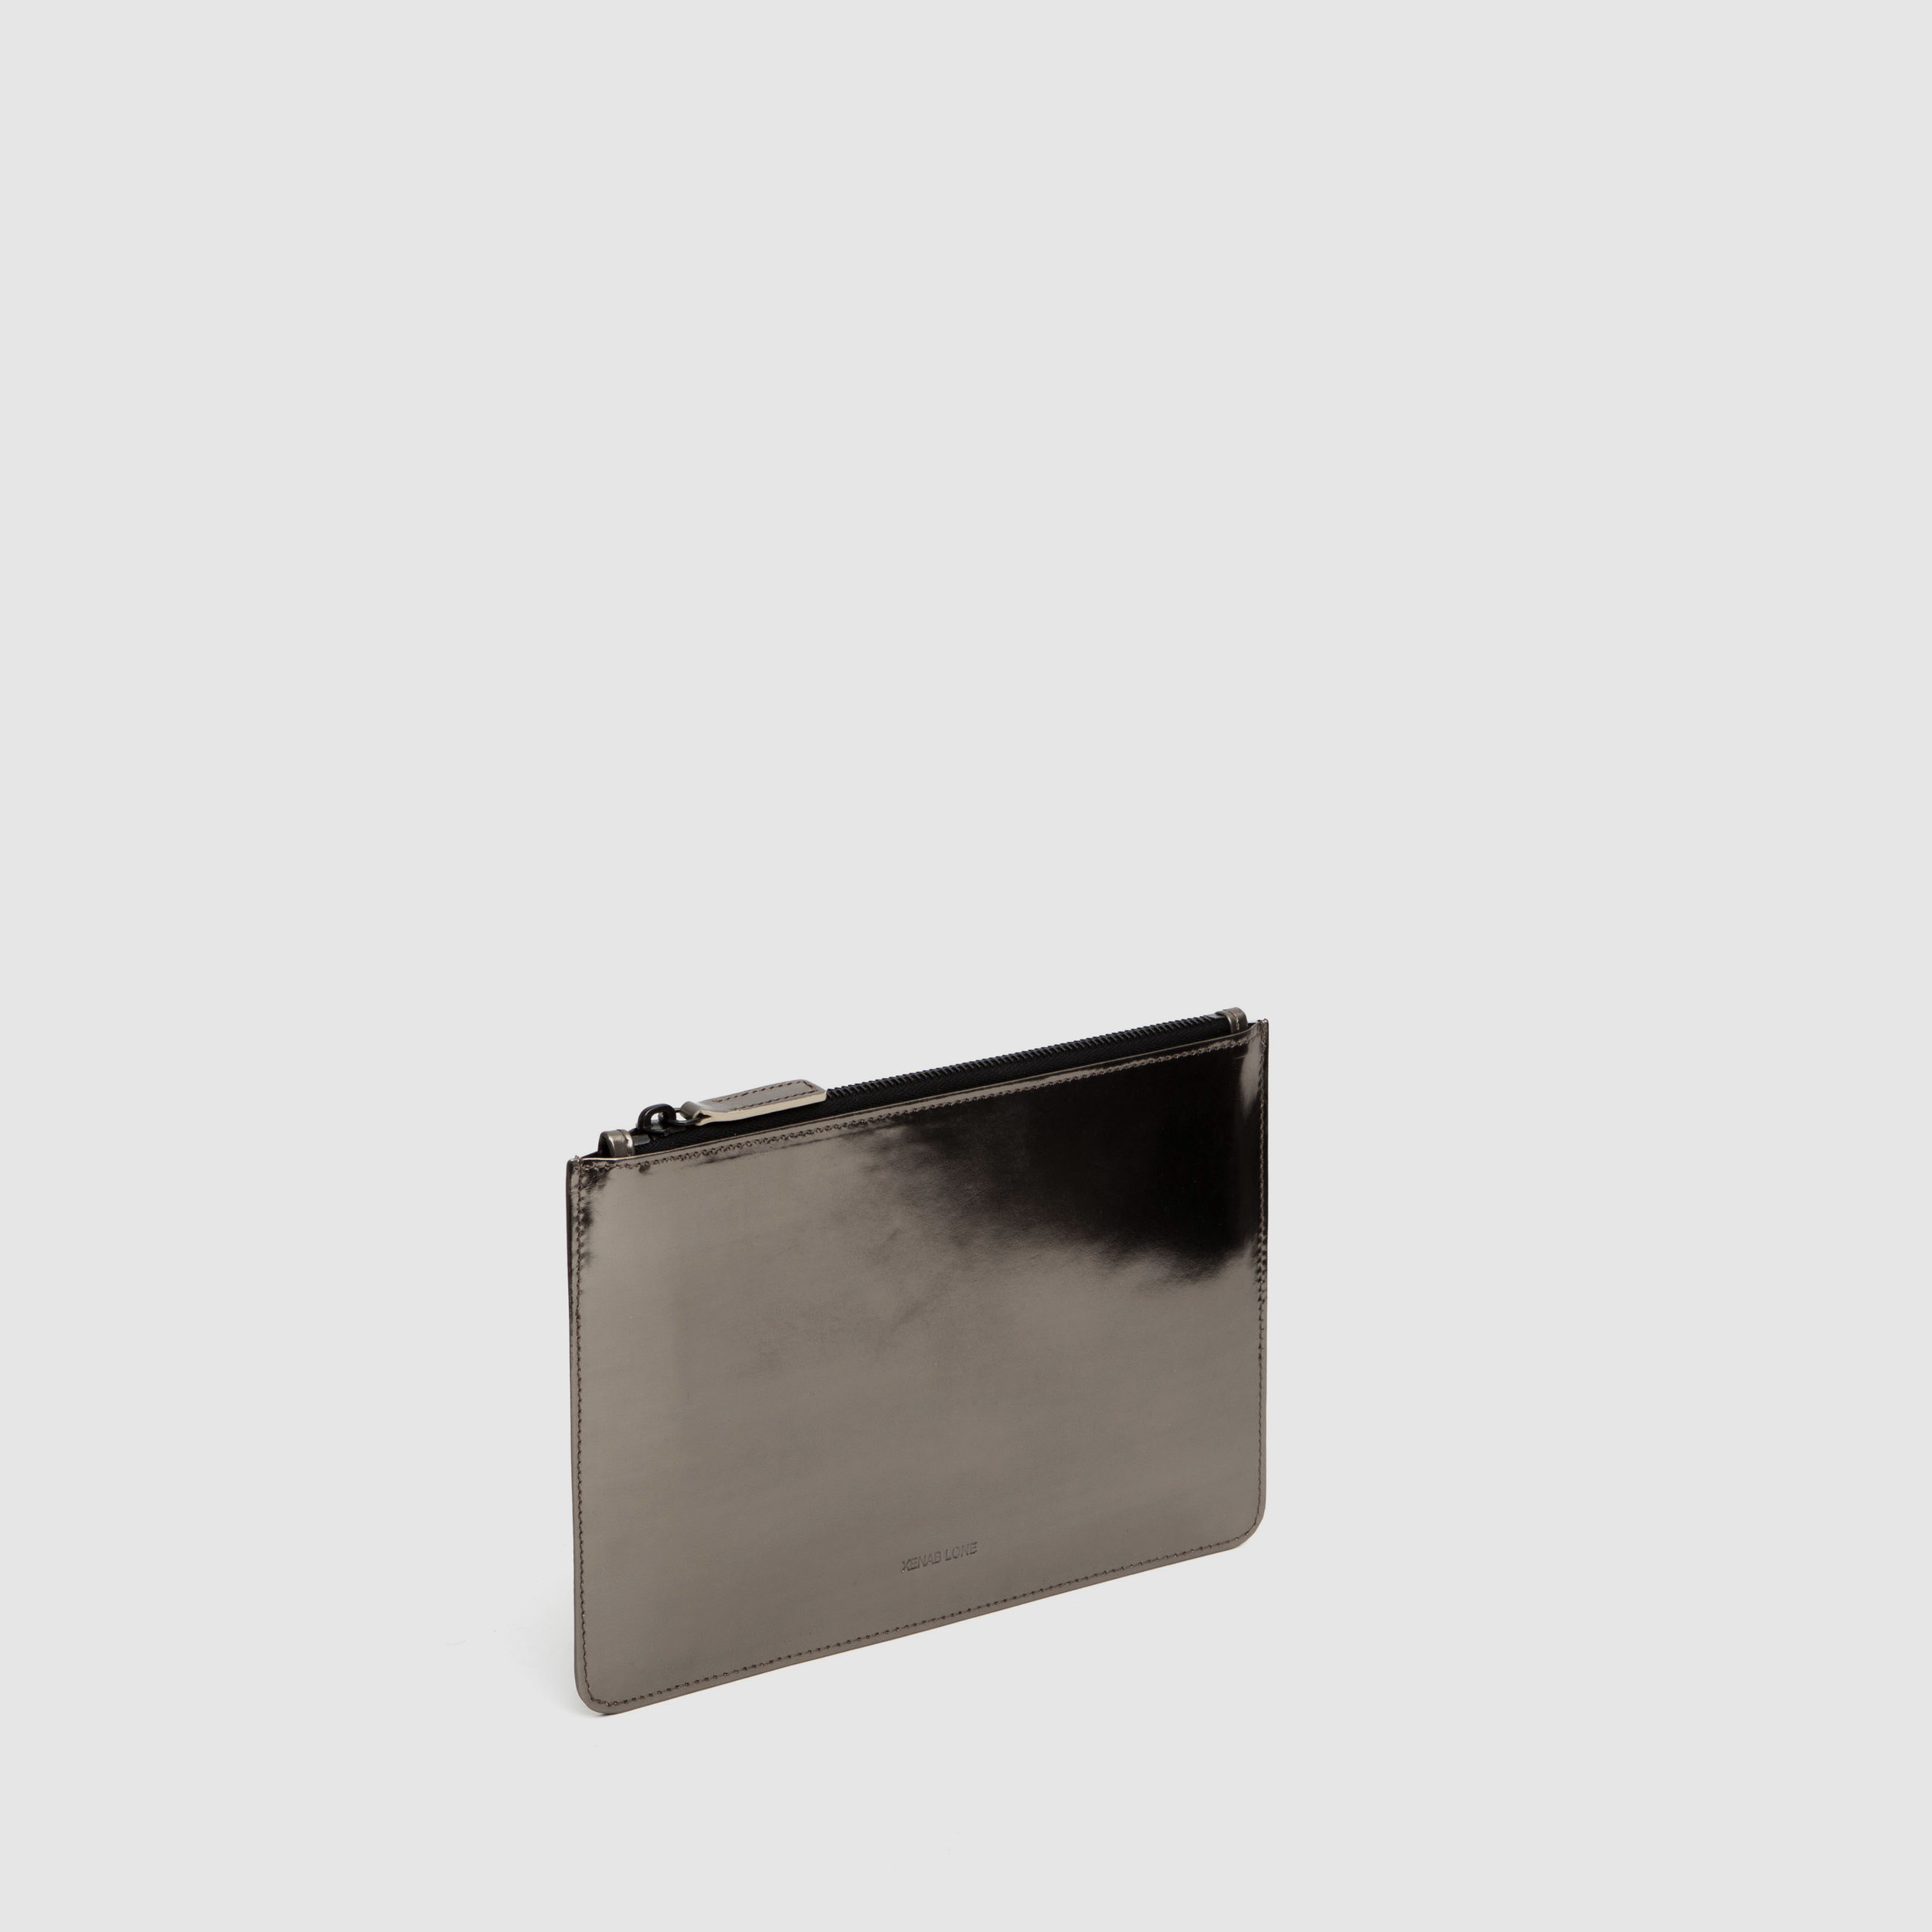 Wallets&Pouches_0003s_0000s_0004_Layer 1.jpg